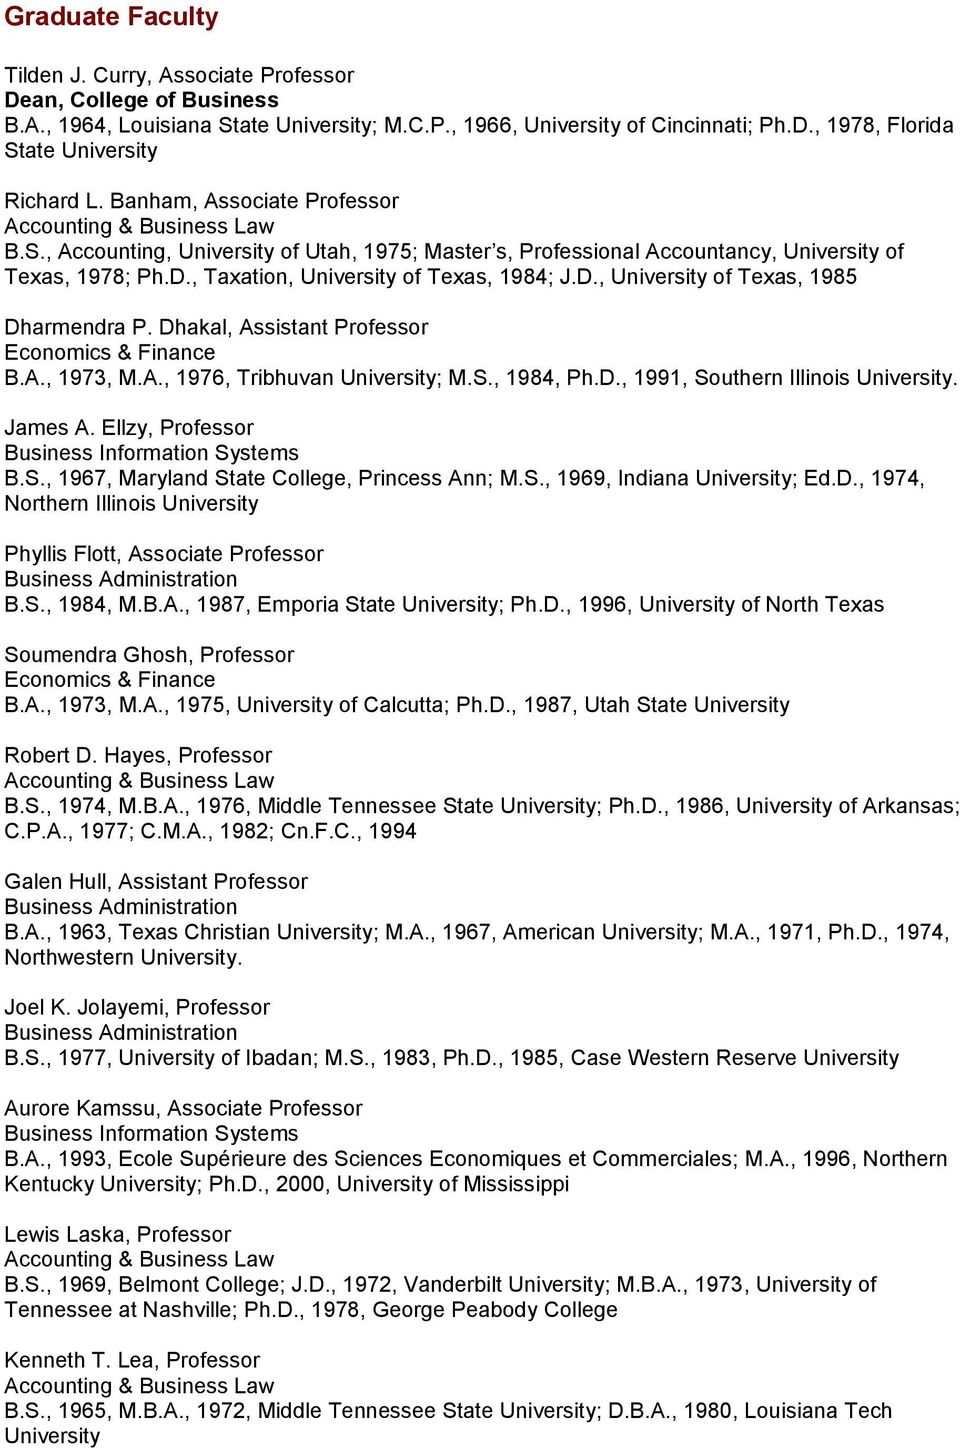 , Taxation, University of Texas, 1984; J.D., University of Texas, 1985 Dharmendra P. Dhakal, Assistant Professor Economics & Finance B.A., 1973, M.A., 1976, Tribhuvan University; M.S., 1984, Ph.D., 1991, Southern Illinois University.